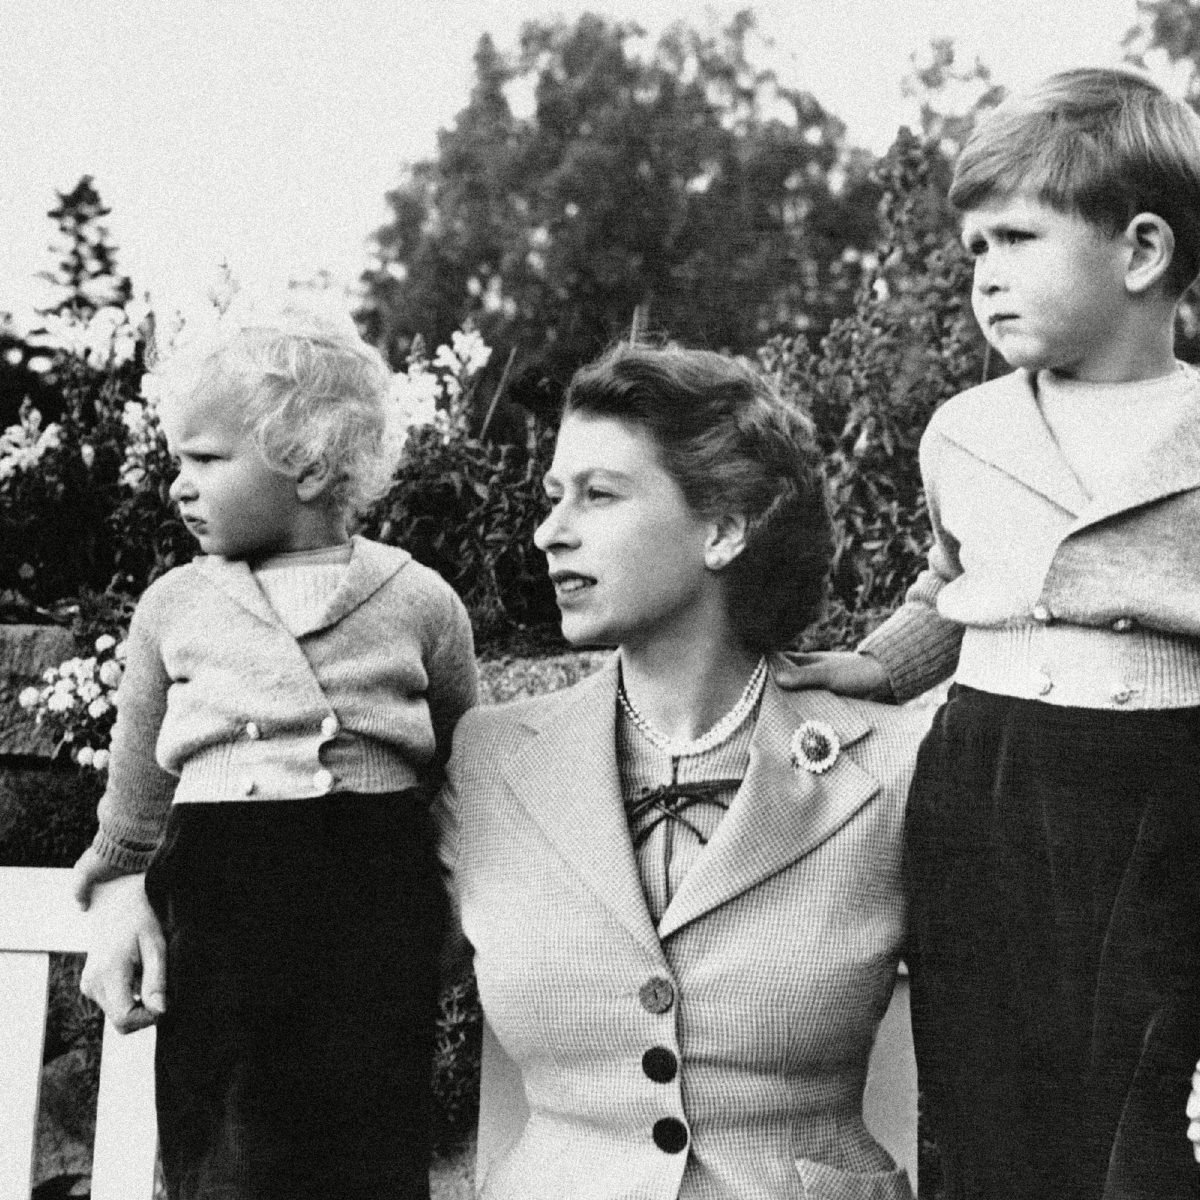 Candid, Rarely Seen Photos of the Royal Family | Reader's Digest